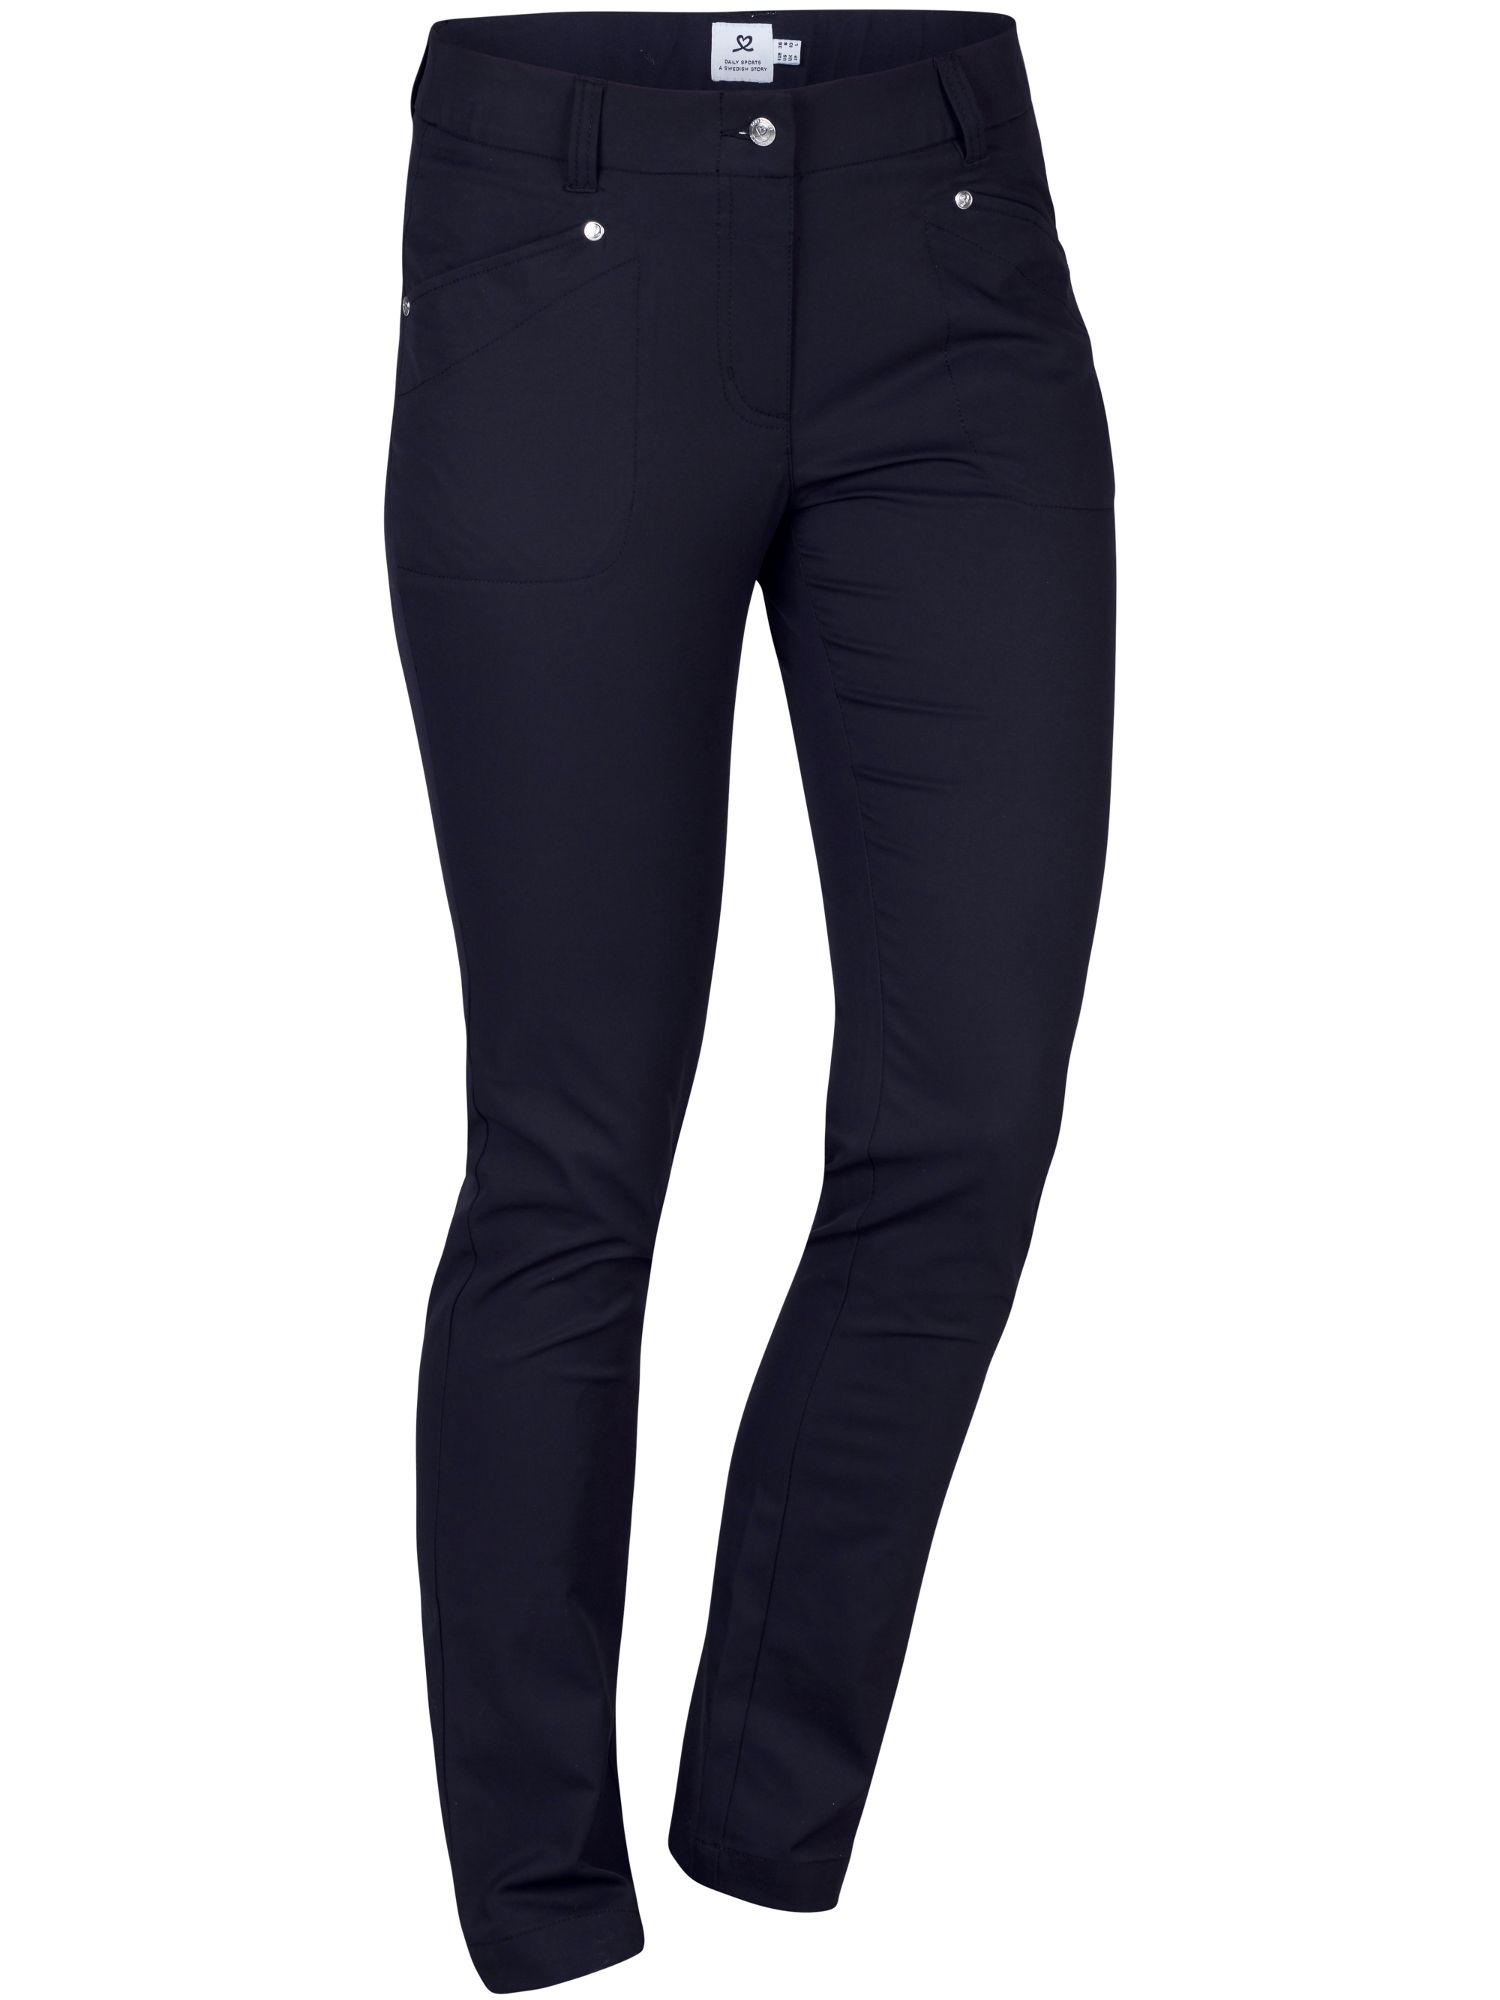 Daily Sports Lyric Trousers, Blue